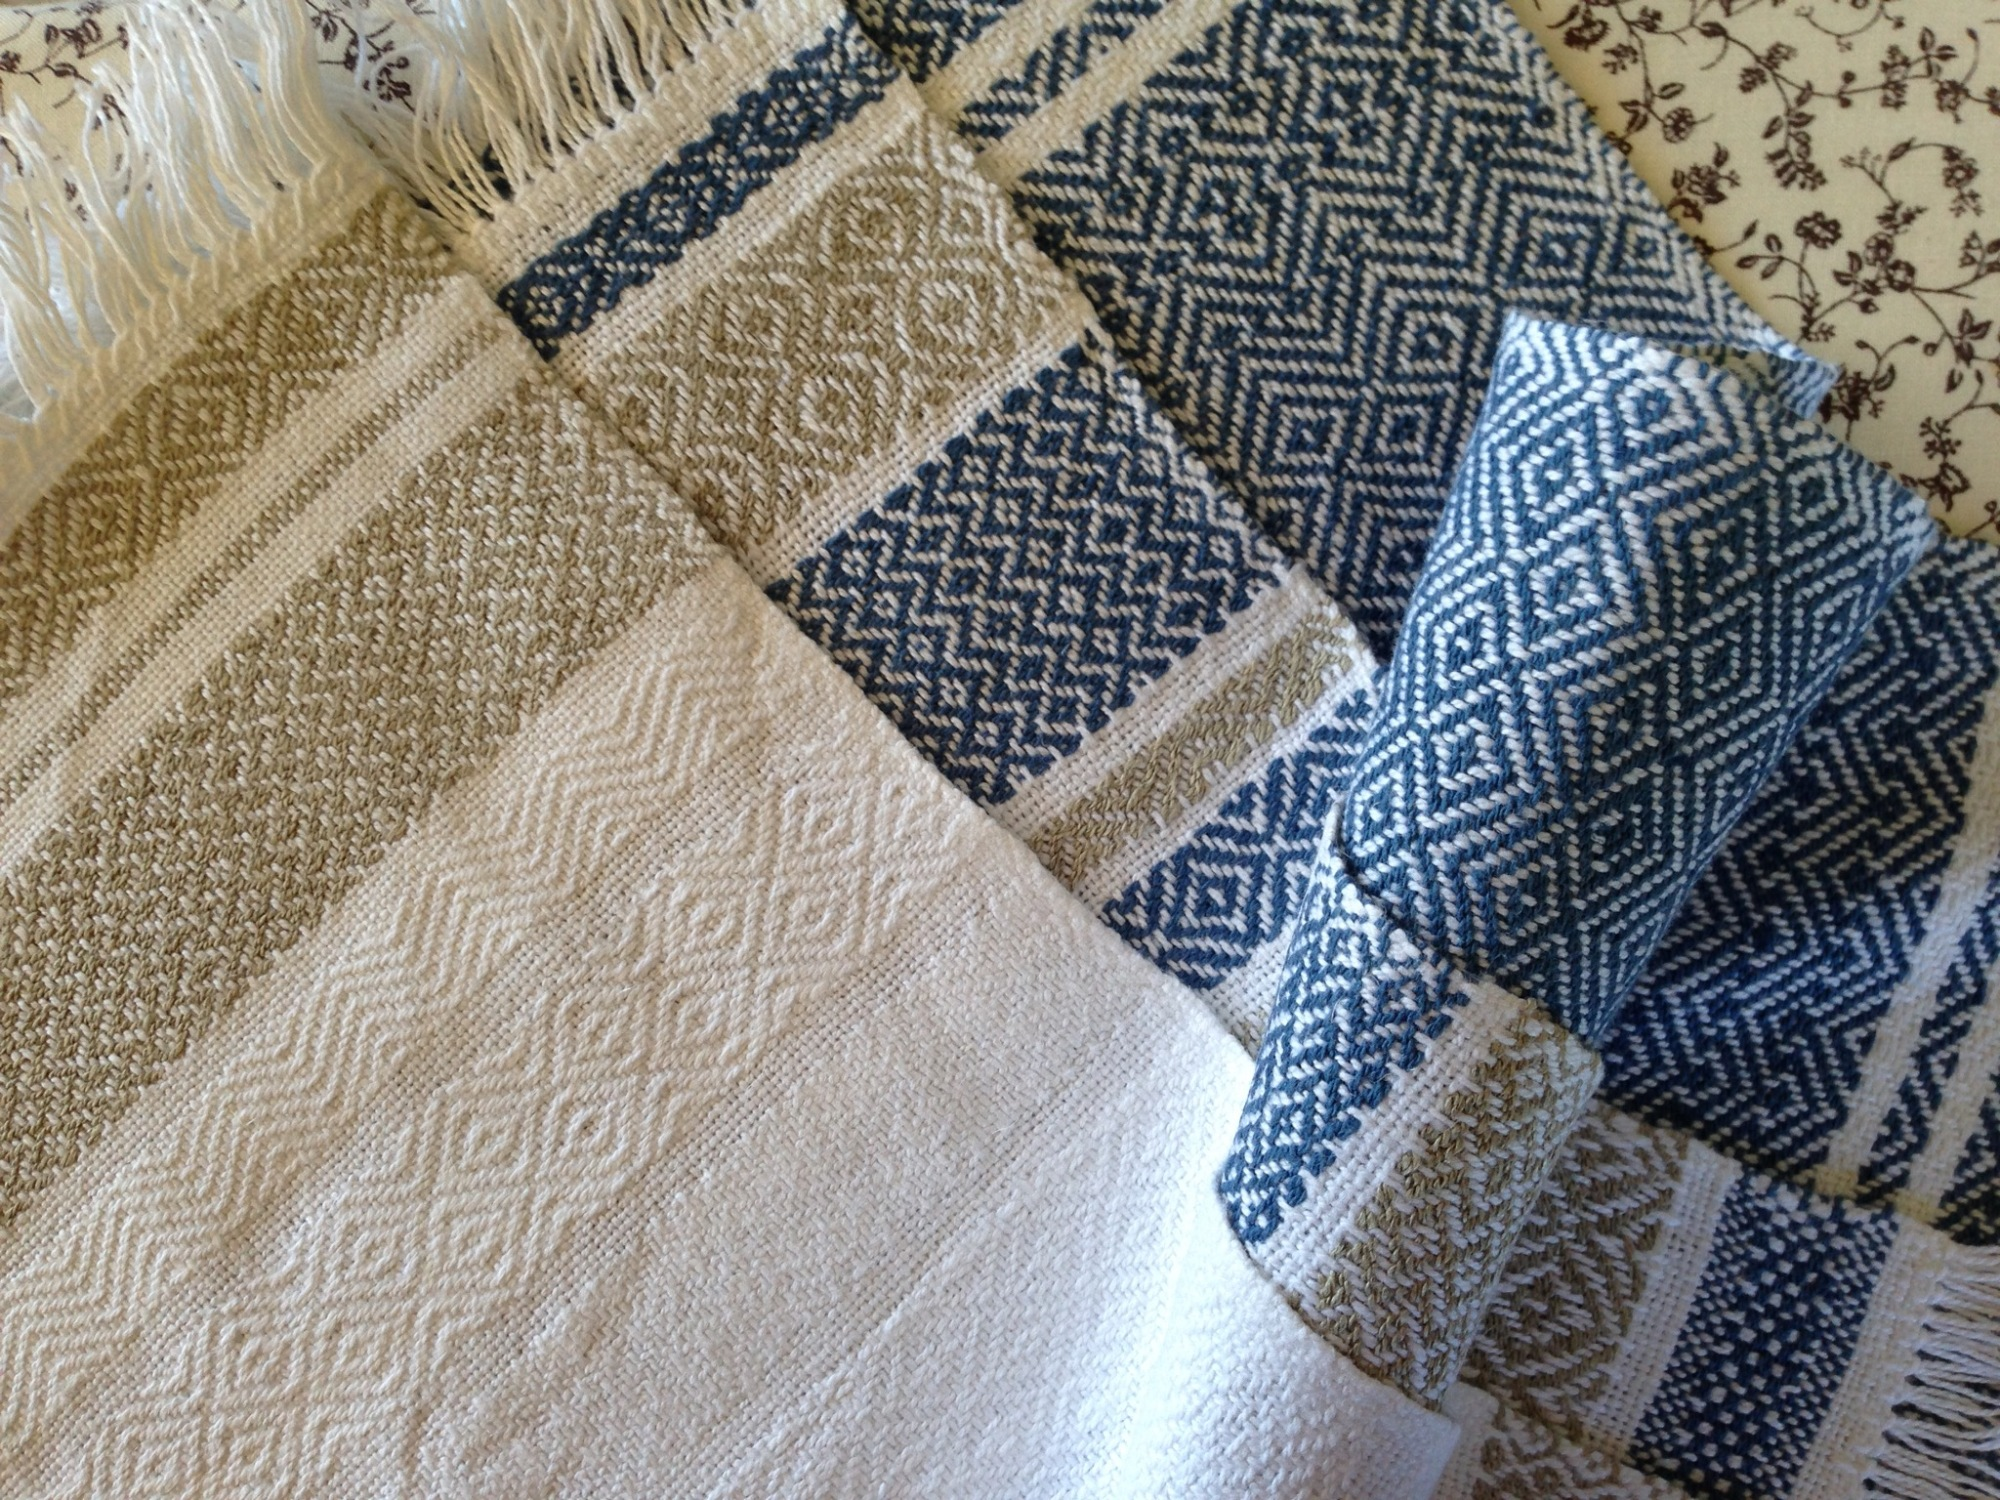 Three handwoven tea towels